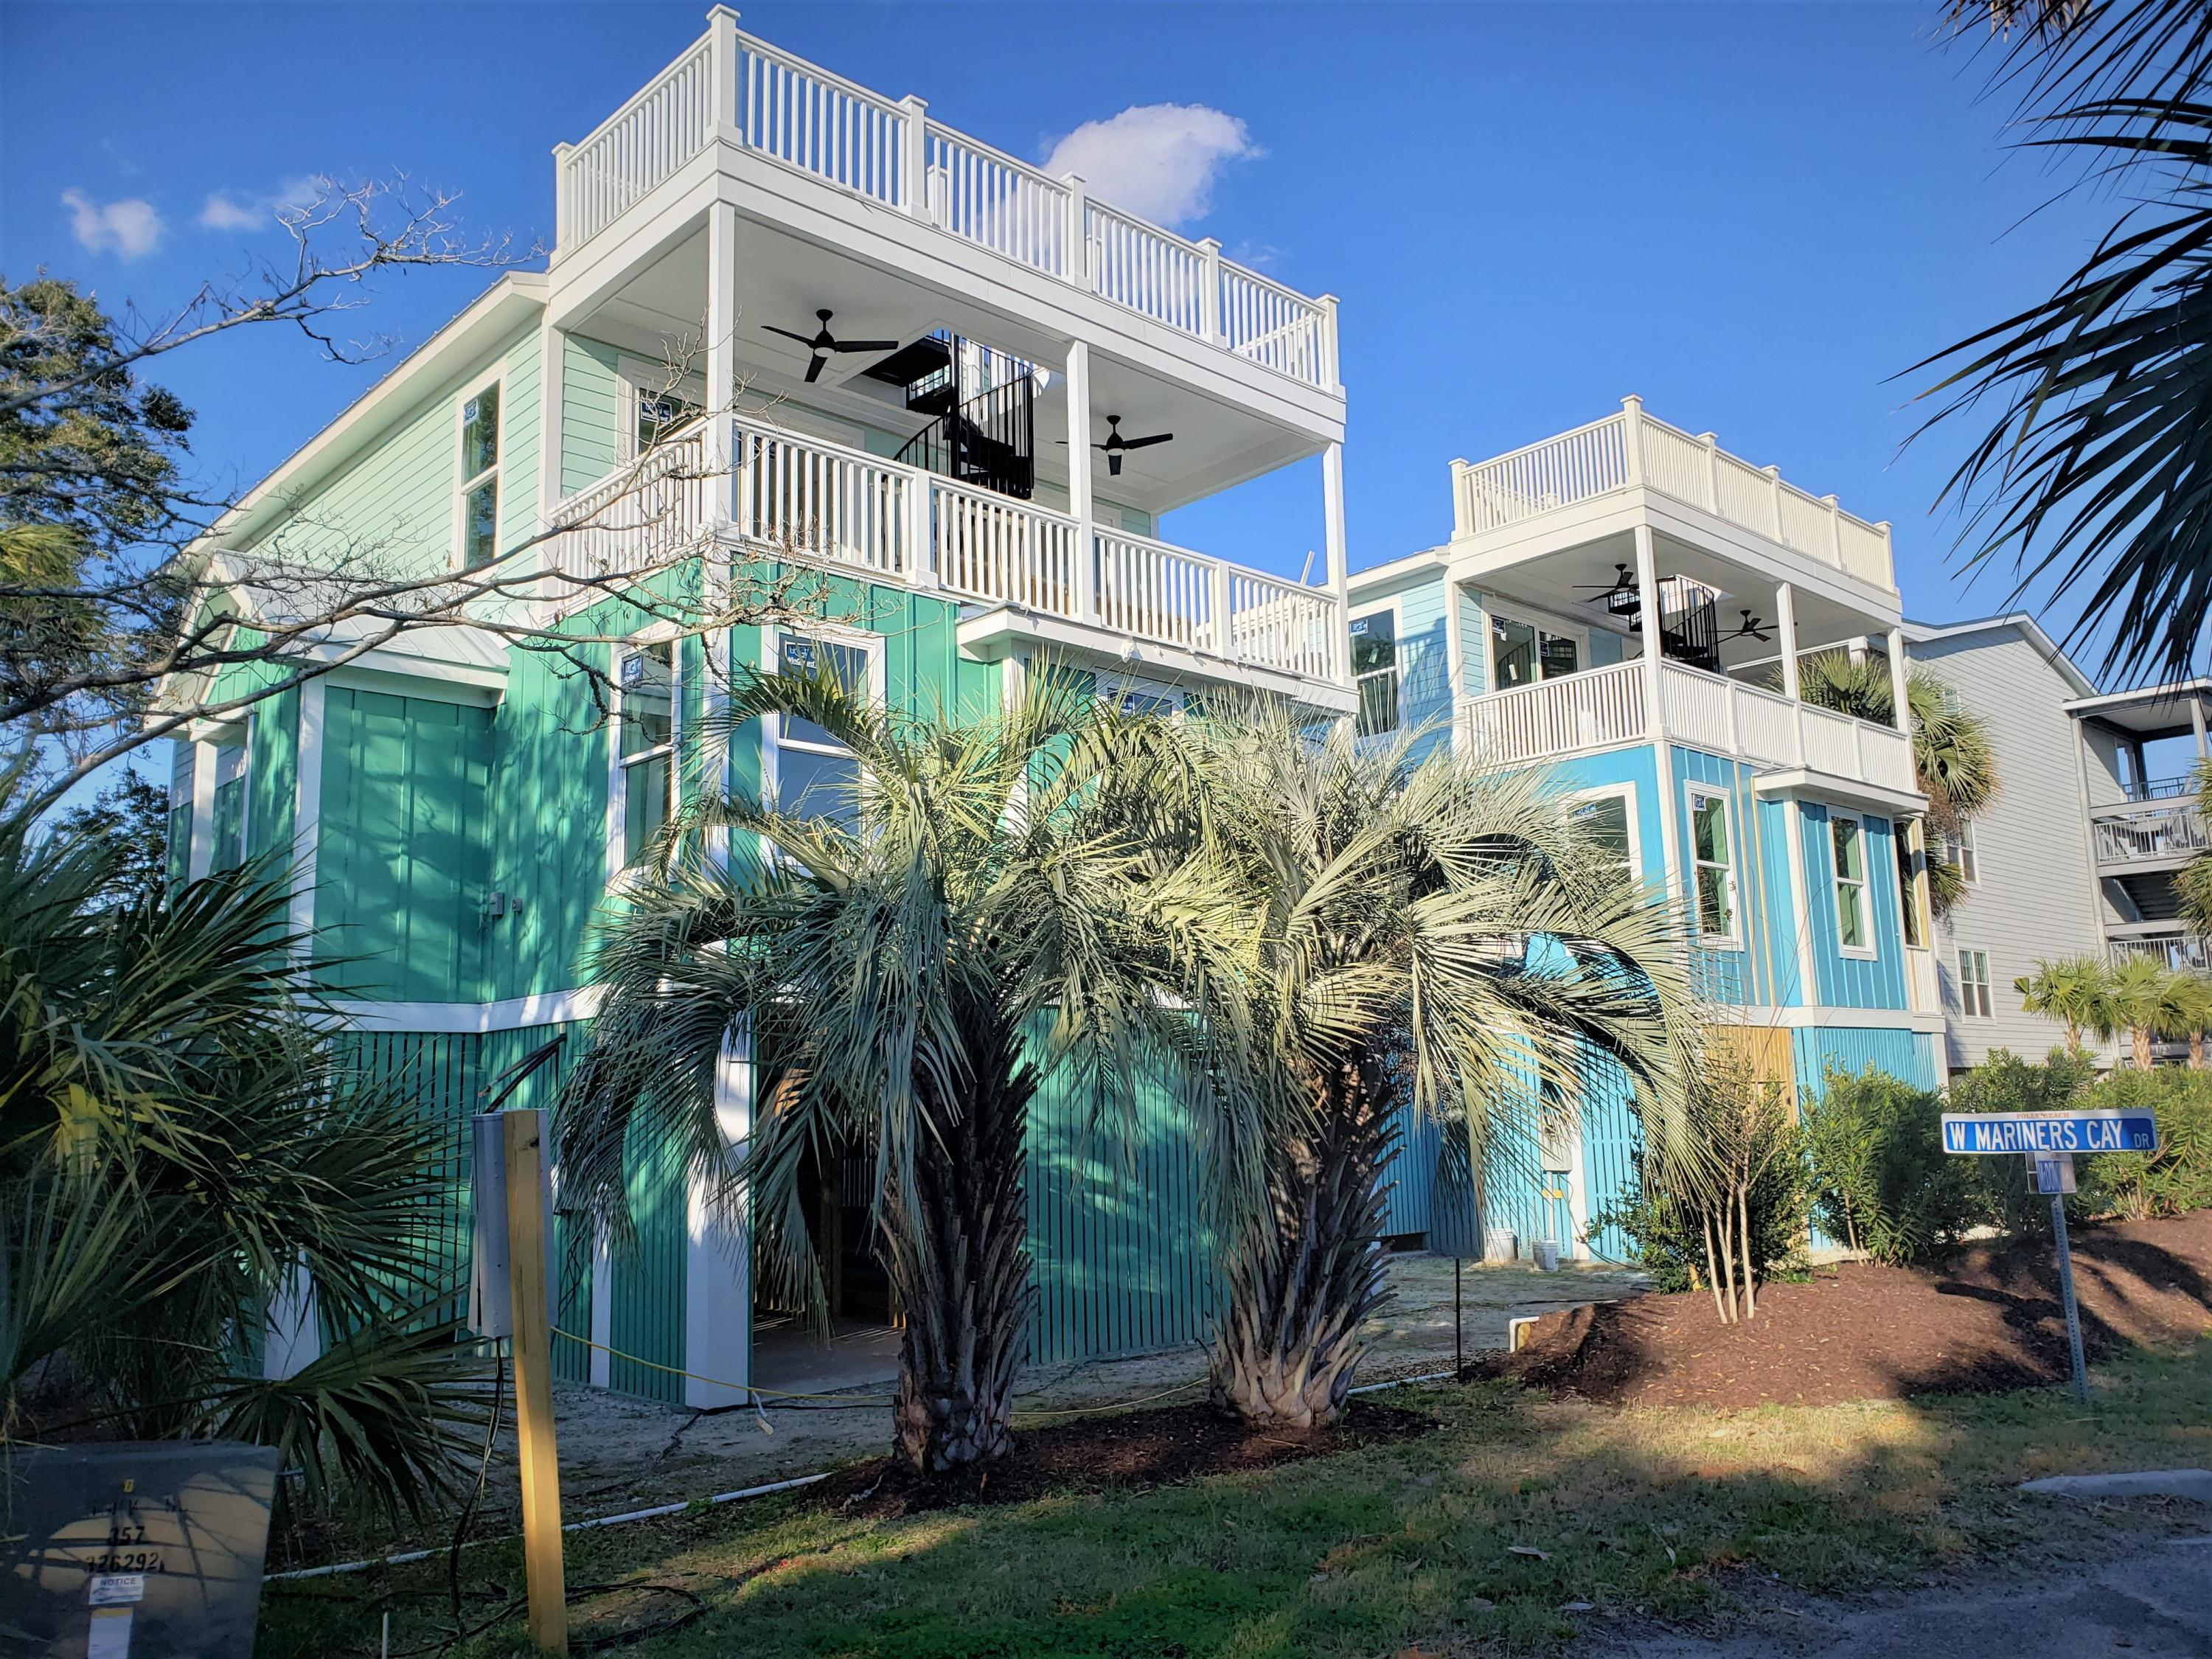 Mariners Cay Homes For Sale - 1006 Mariners Cay, Folly Beach, SC - 28